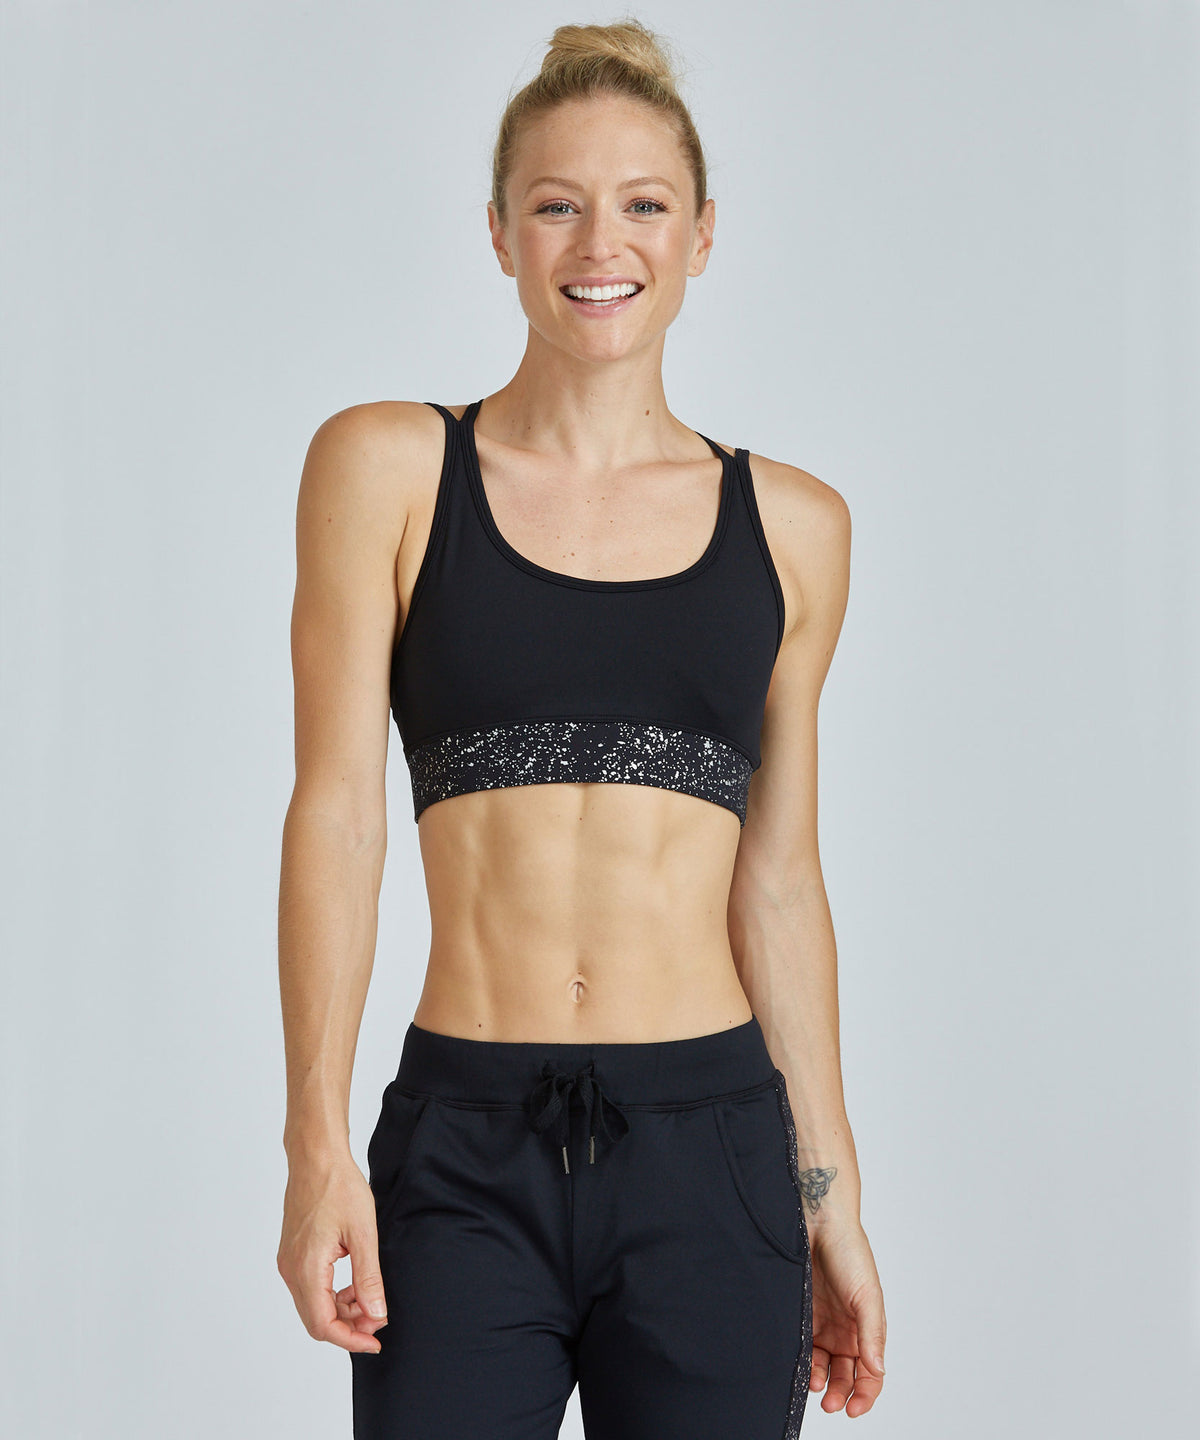 Strappy Bra - Silver Travertine Silver Travertine Strappy Bra - Women's Sports Bra by PRISMSPORT